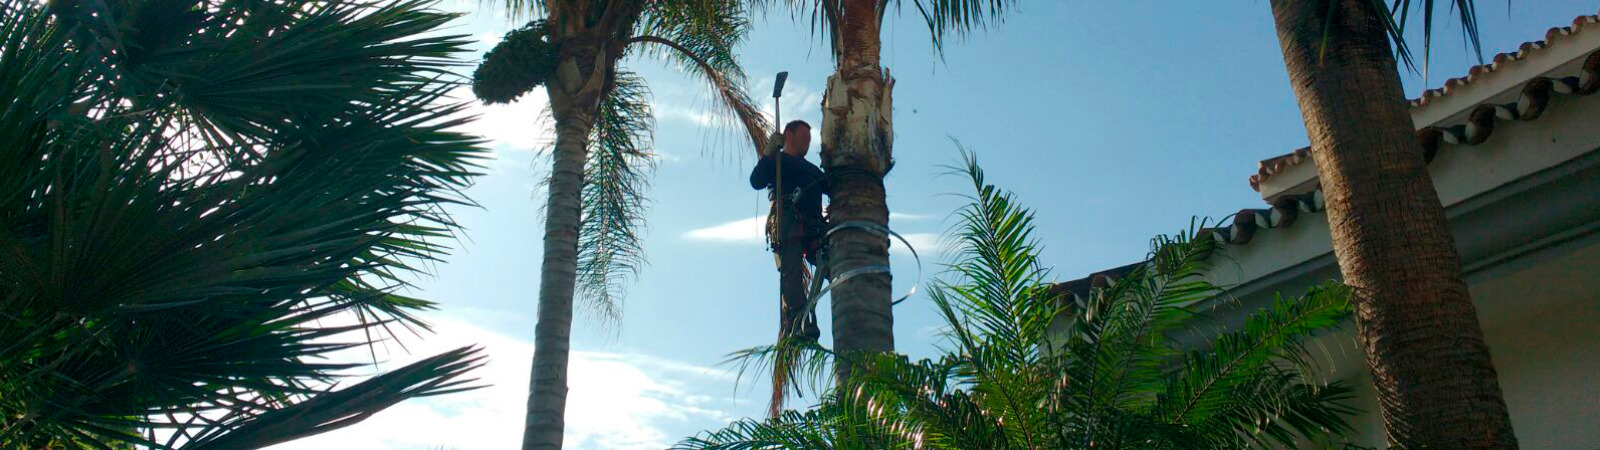 Pruning and cleaning palms trees